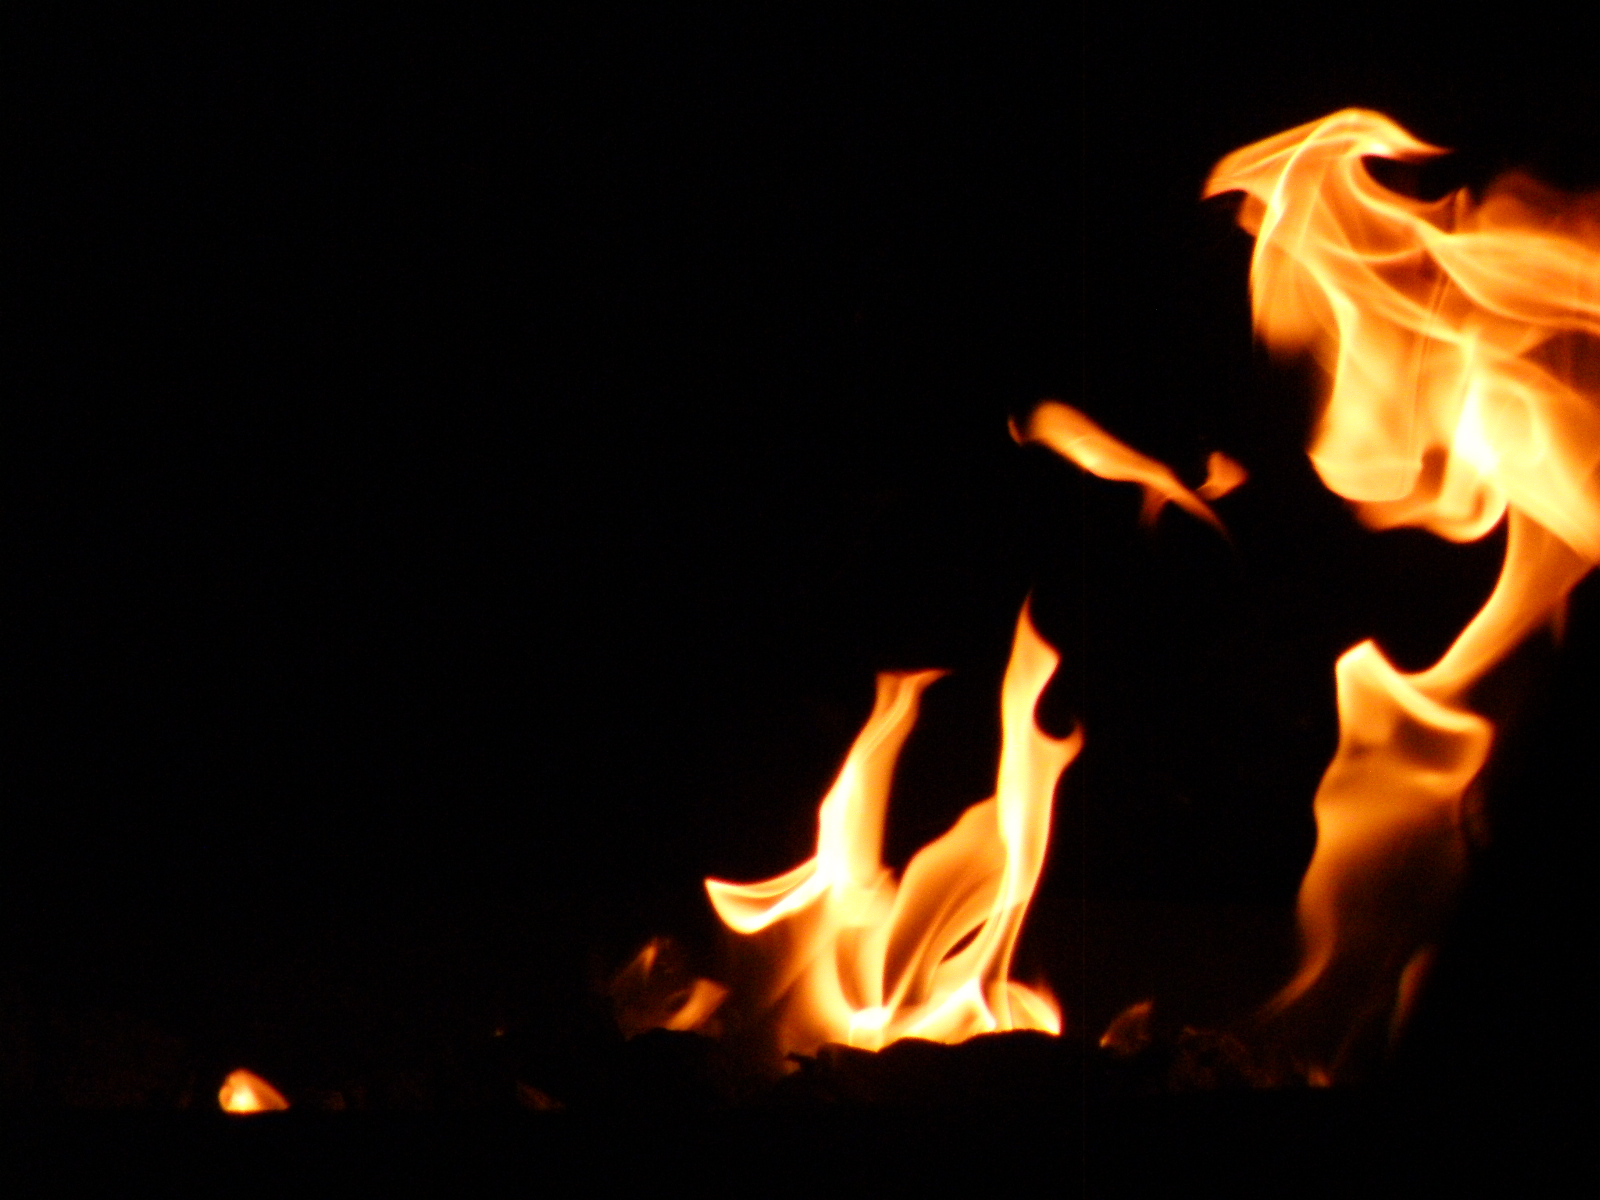 Blazing Fire Images File:blazing Fire to The Left